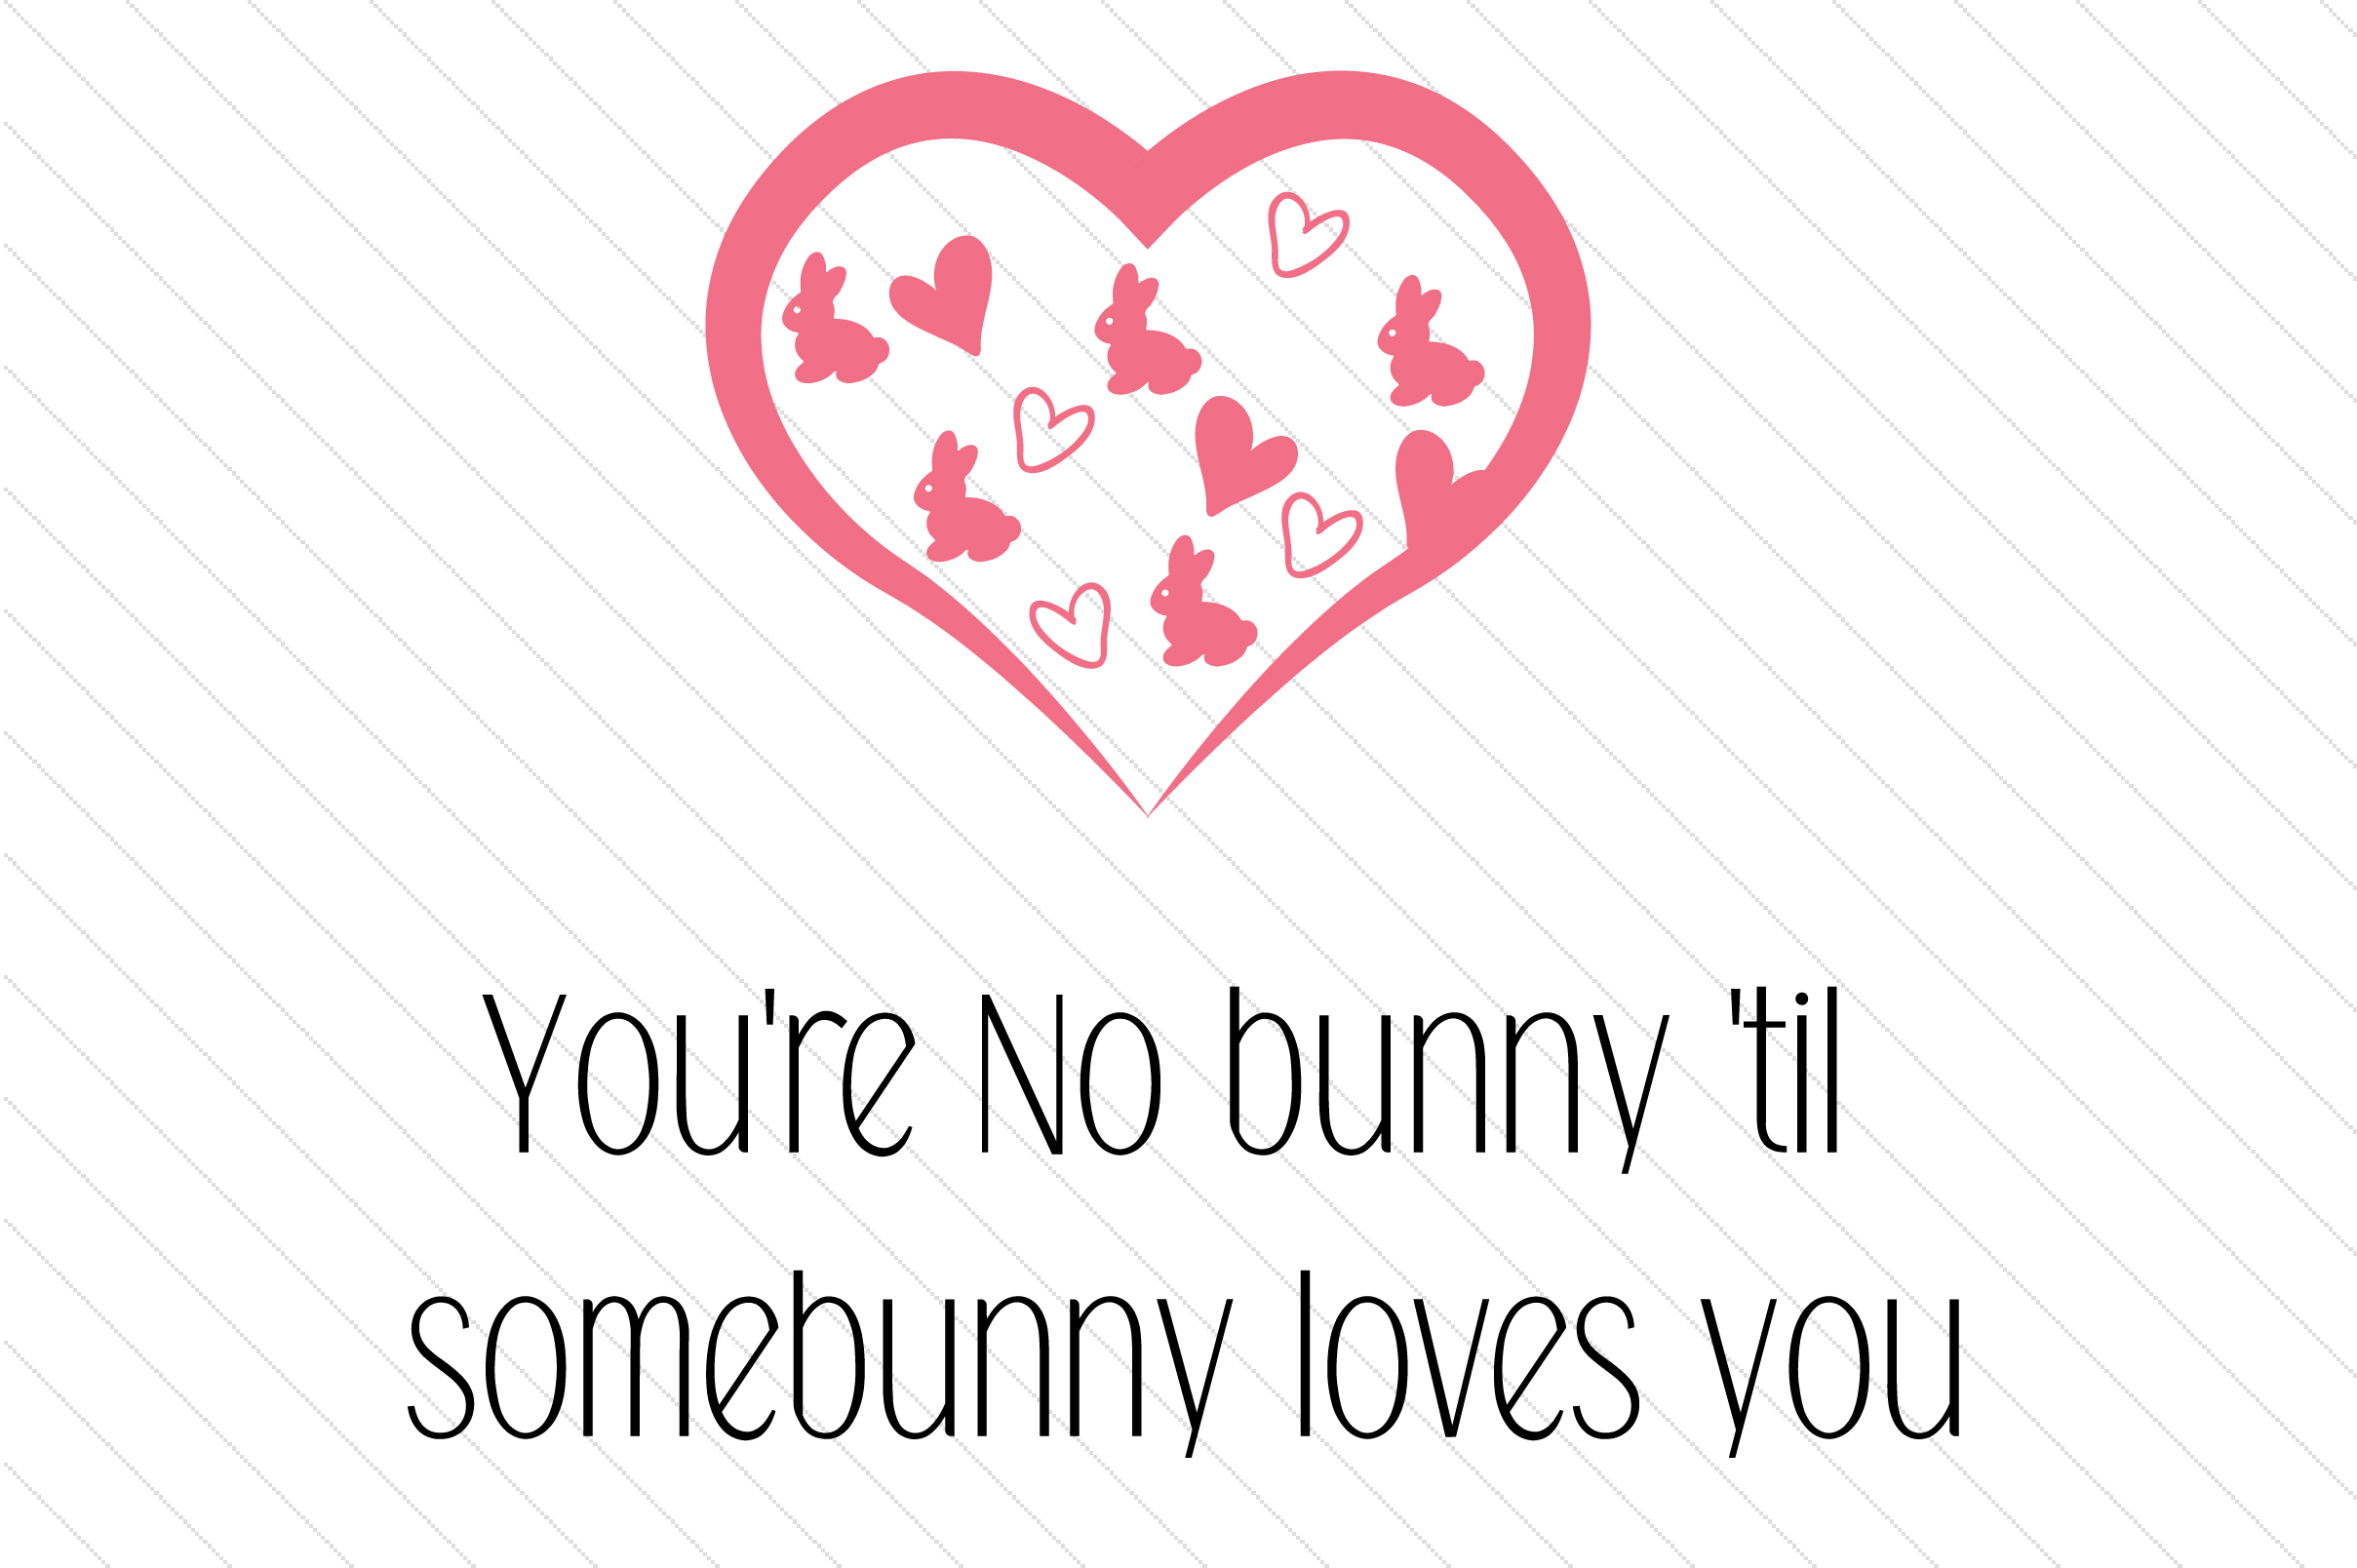 You're No Bunny 'til Somebunny Loves You Love Craft Cut File By Creative Fabrica Crafts